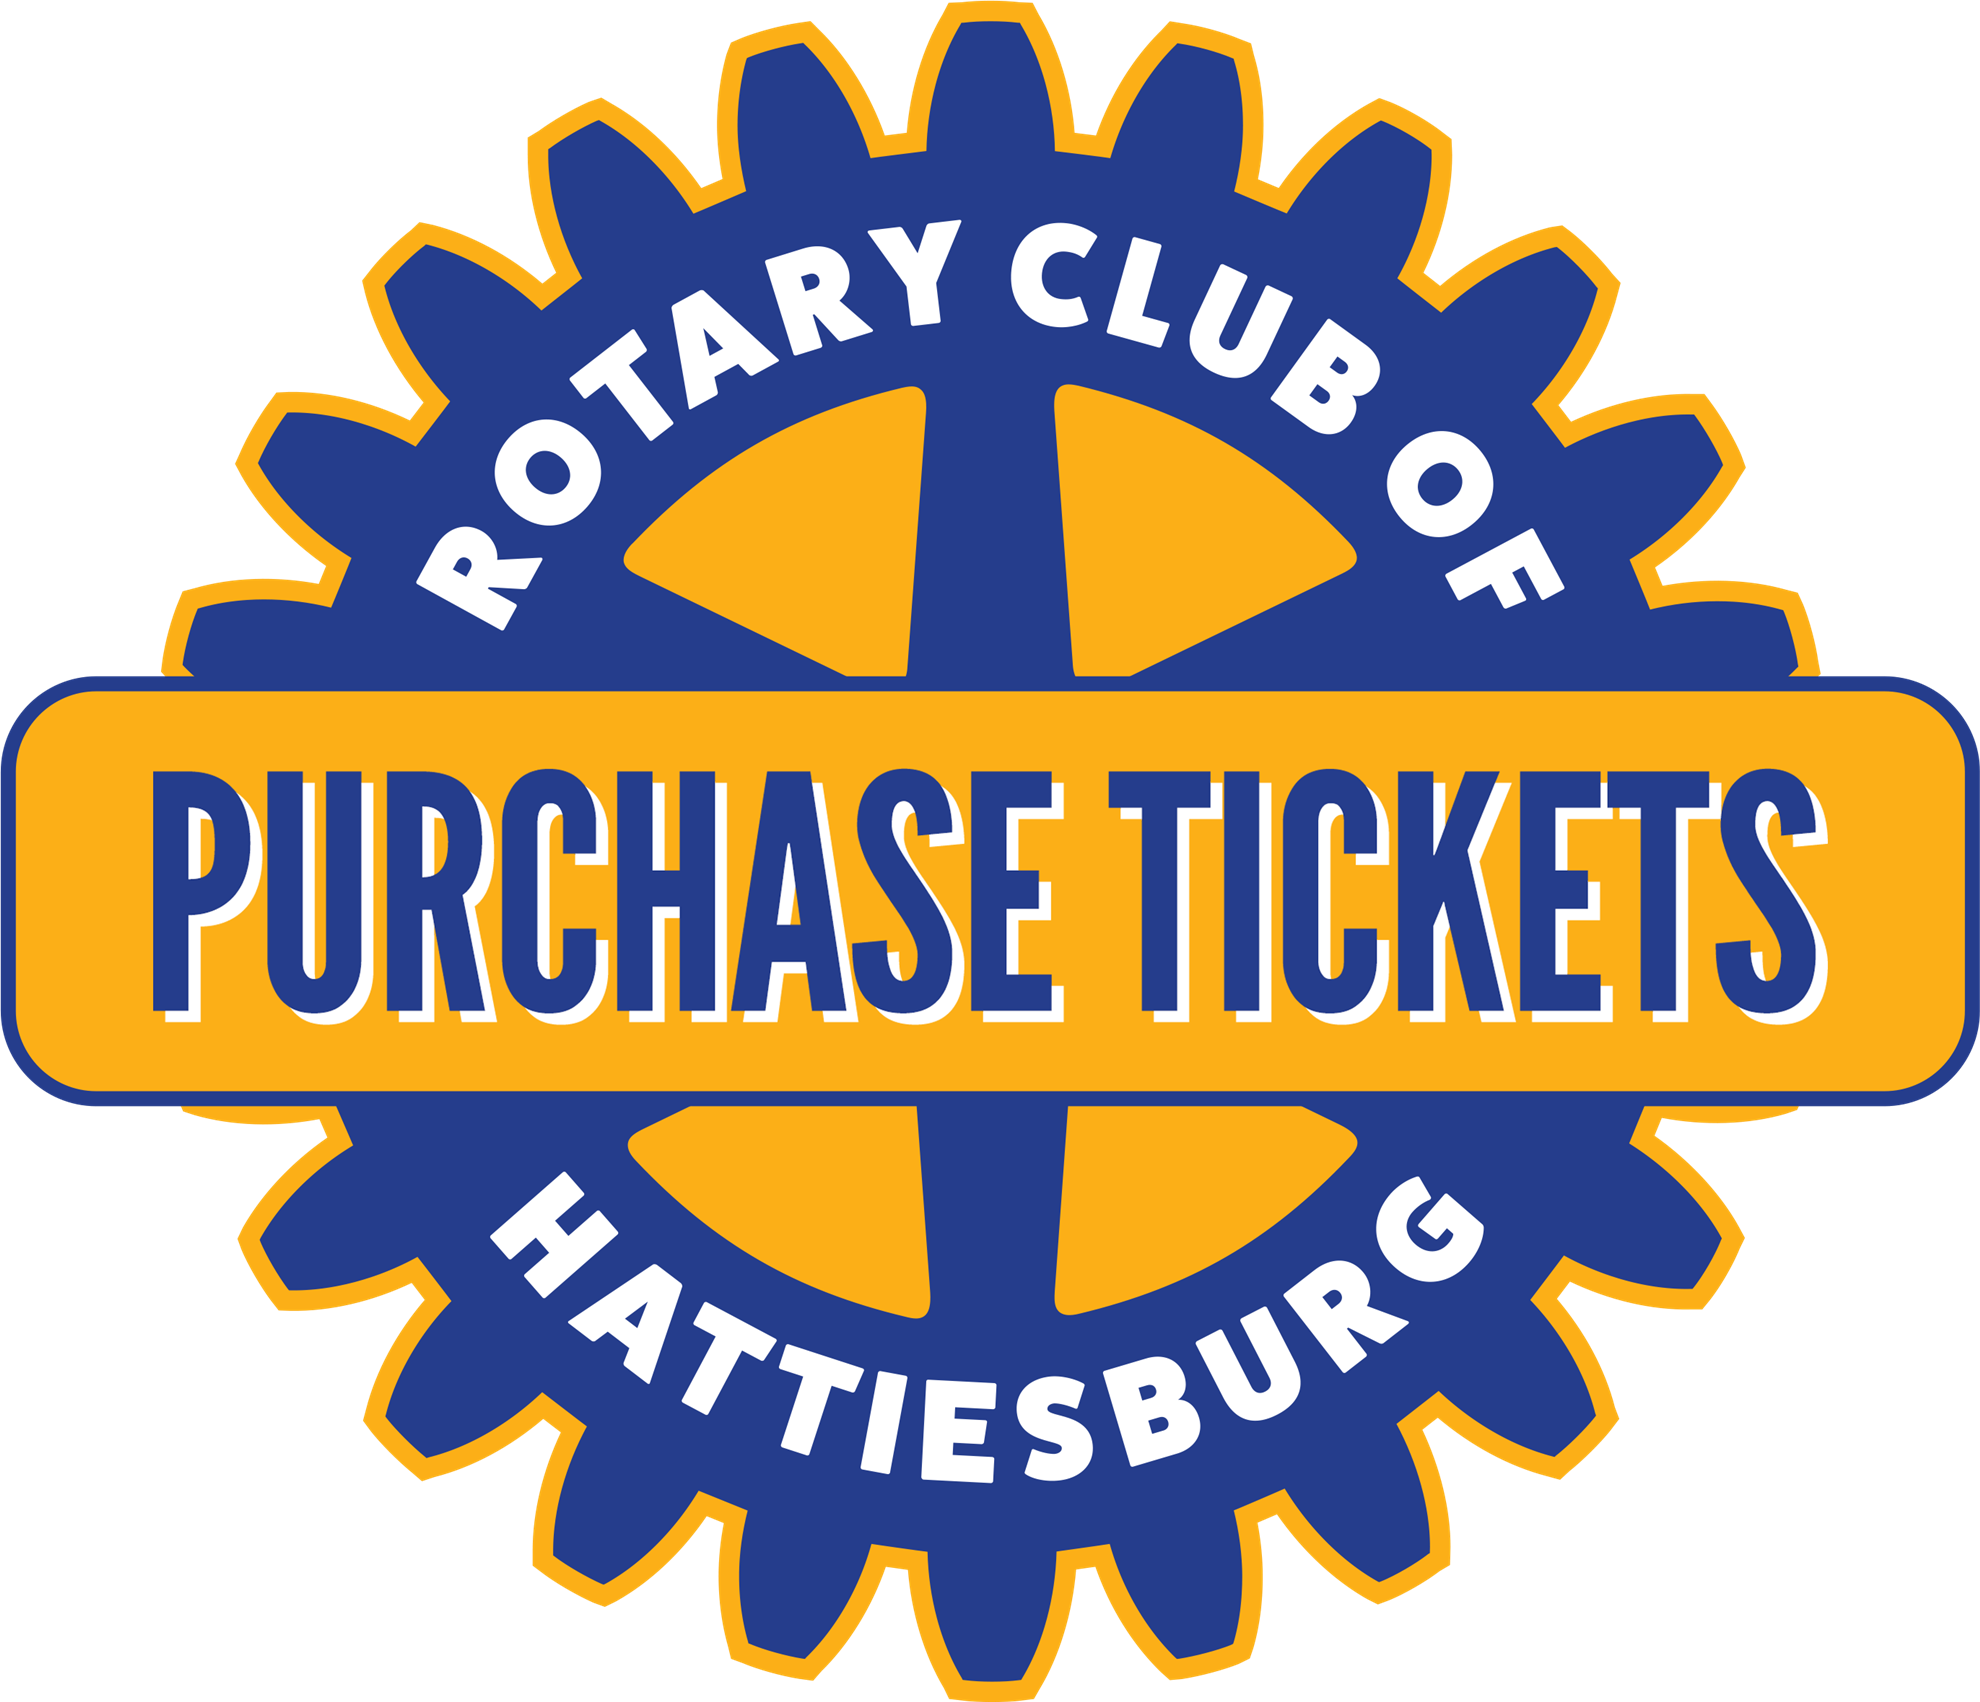 With Ticket Purchase - Emblem Clipart (1980x1702), Png Download